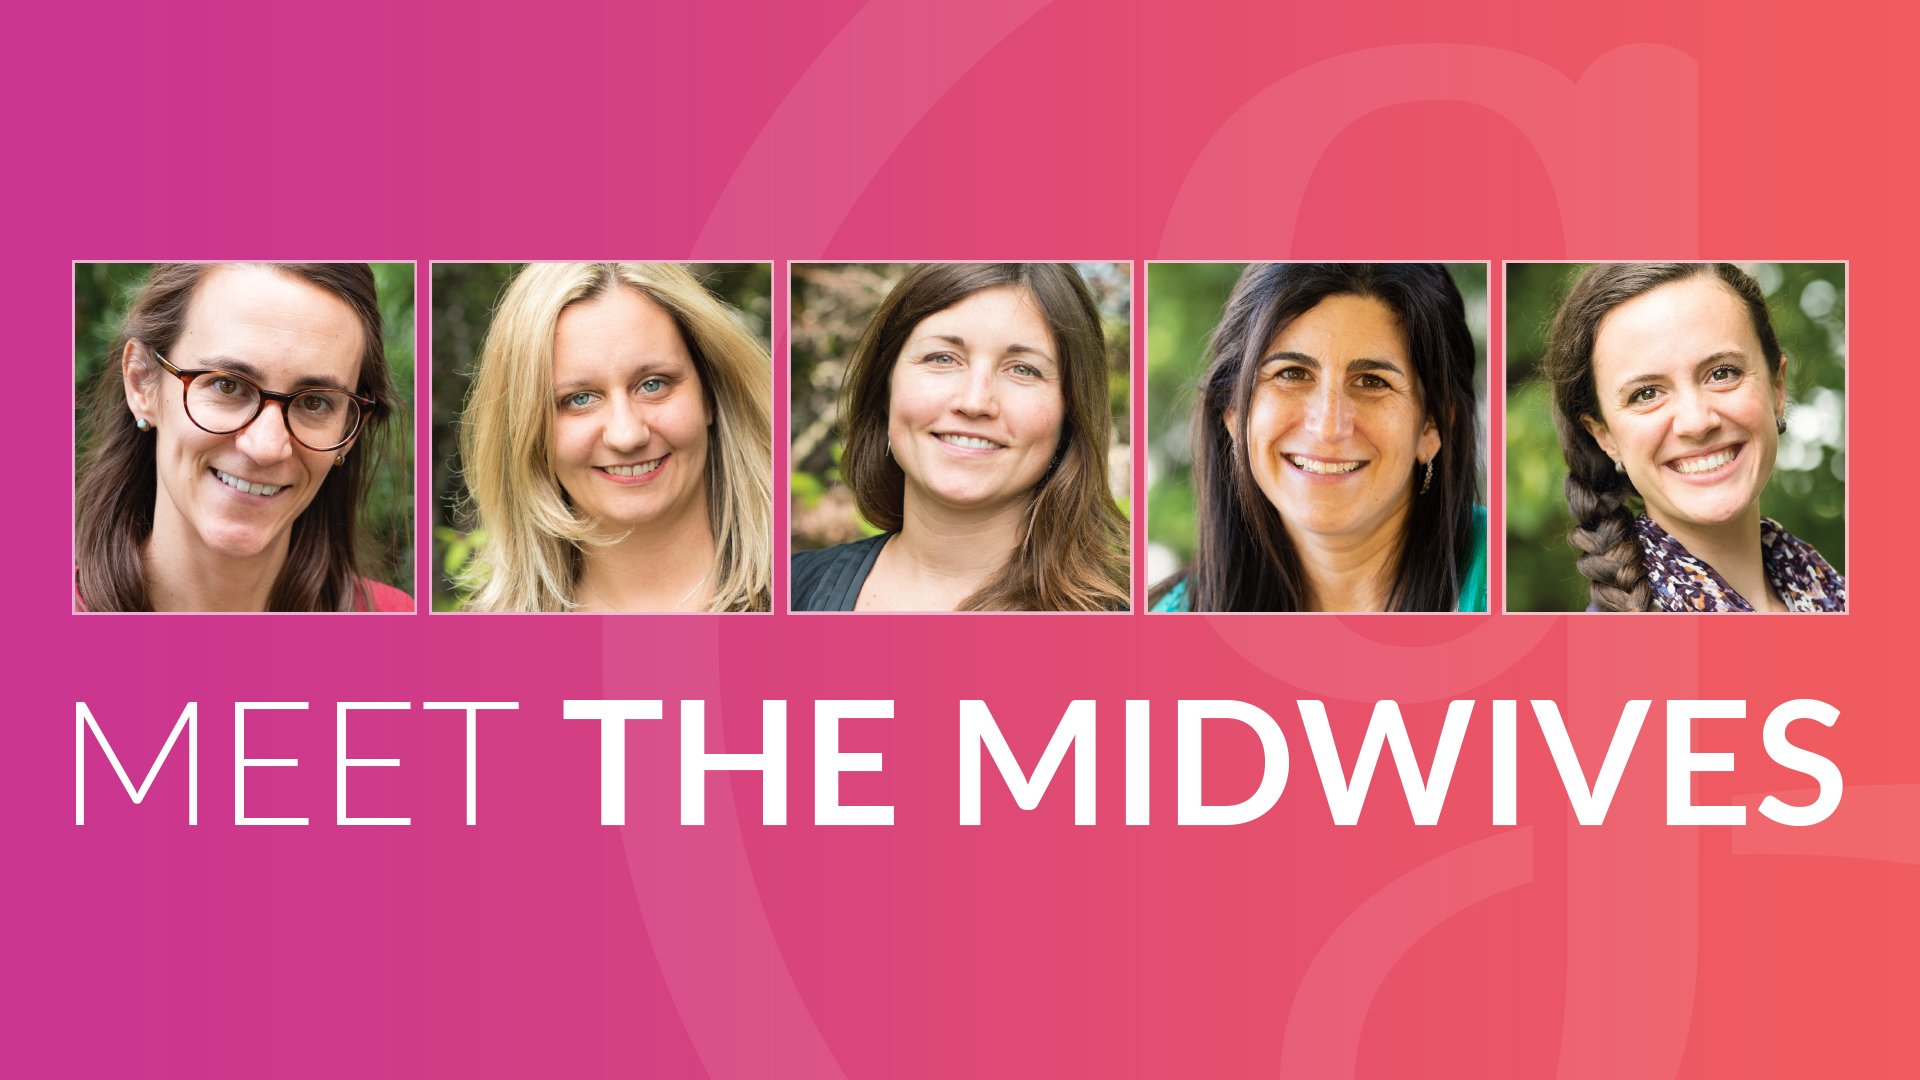 MeetTheMidwives-Dec2020-FBCoverPhoto